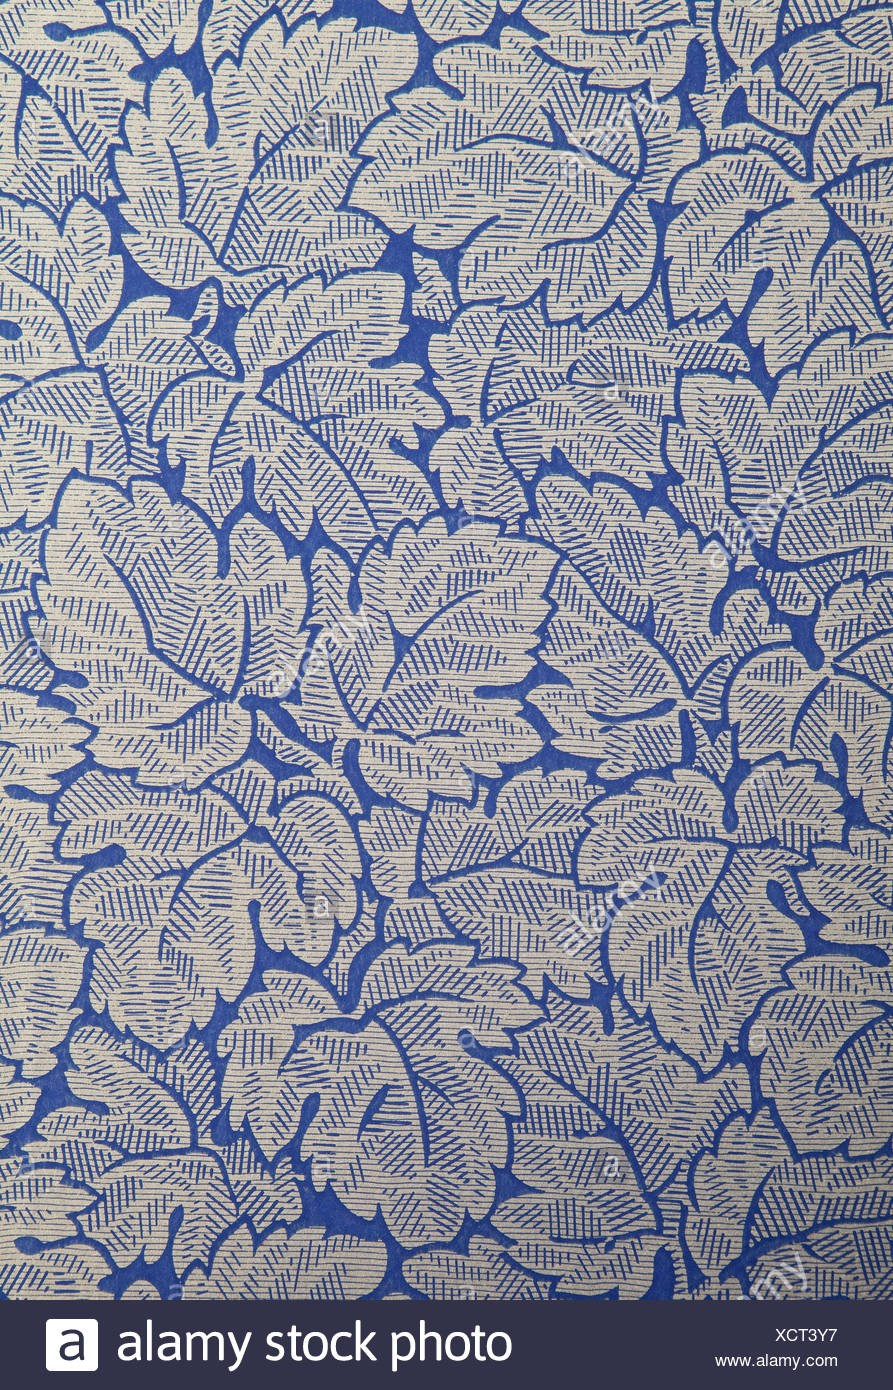 Antique wallpaper with flowers and leafs - Stock Image